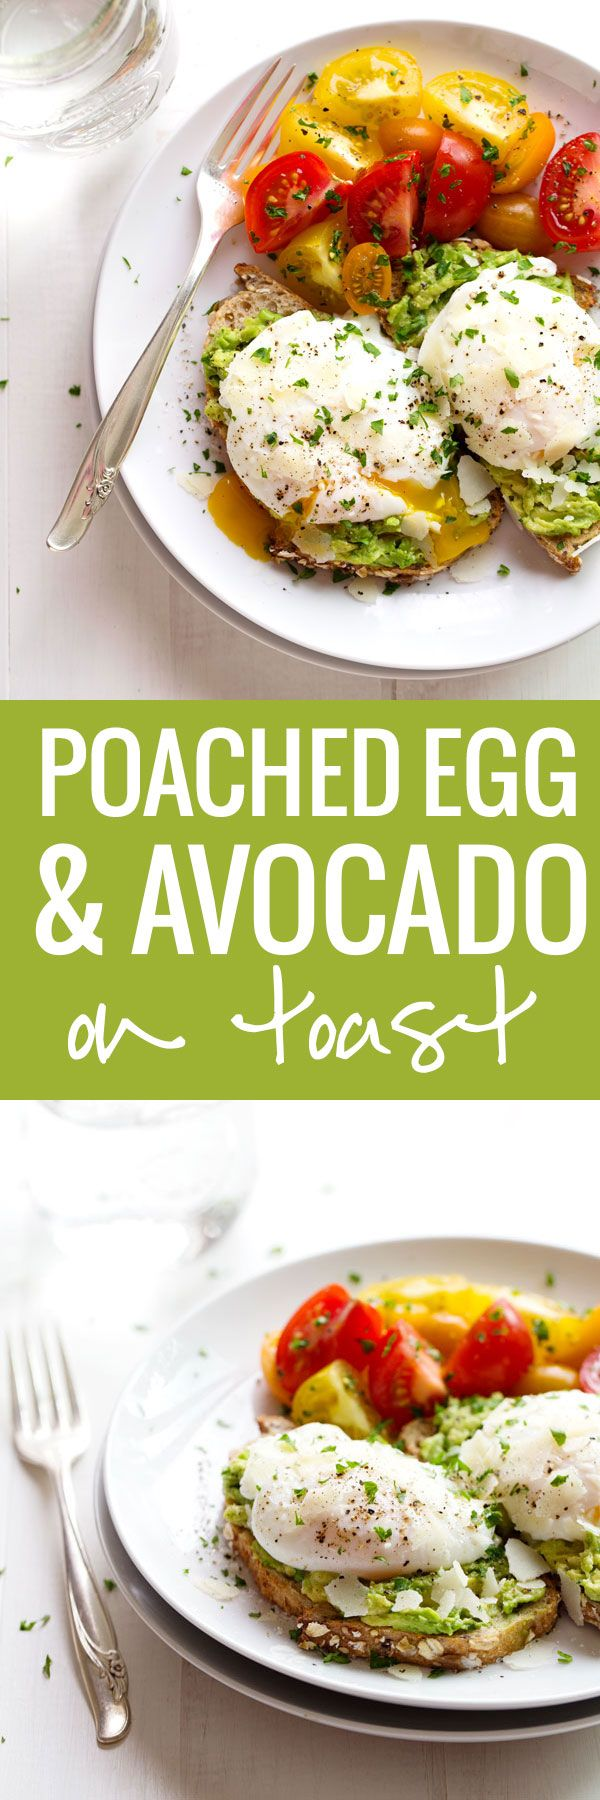 This delicious and healthy breakfast of poached egg and avocado toast takes only ten minutes to prep.